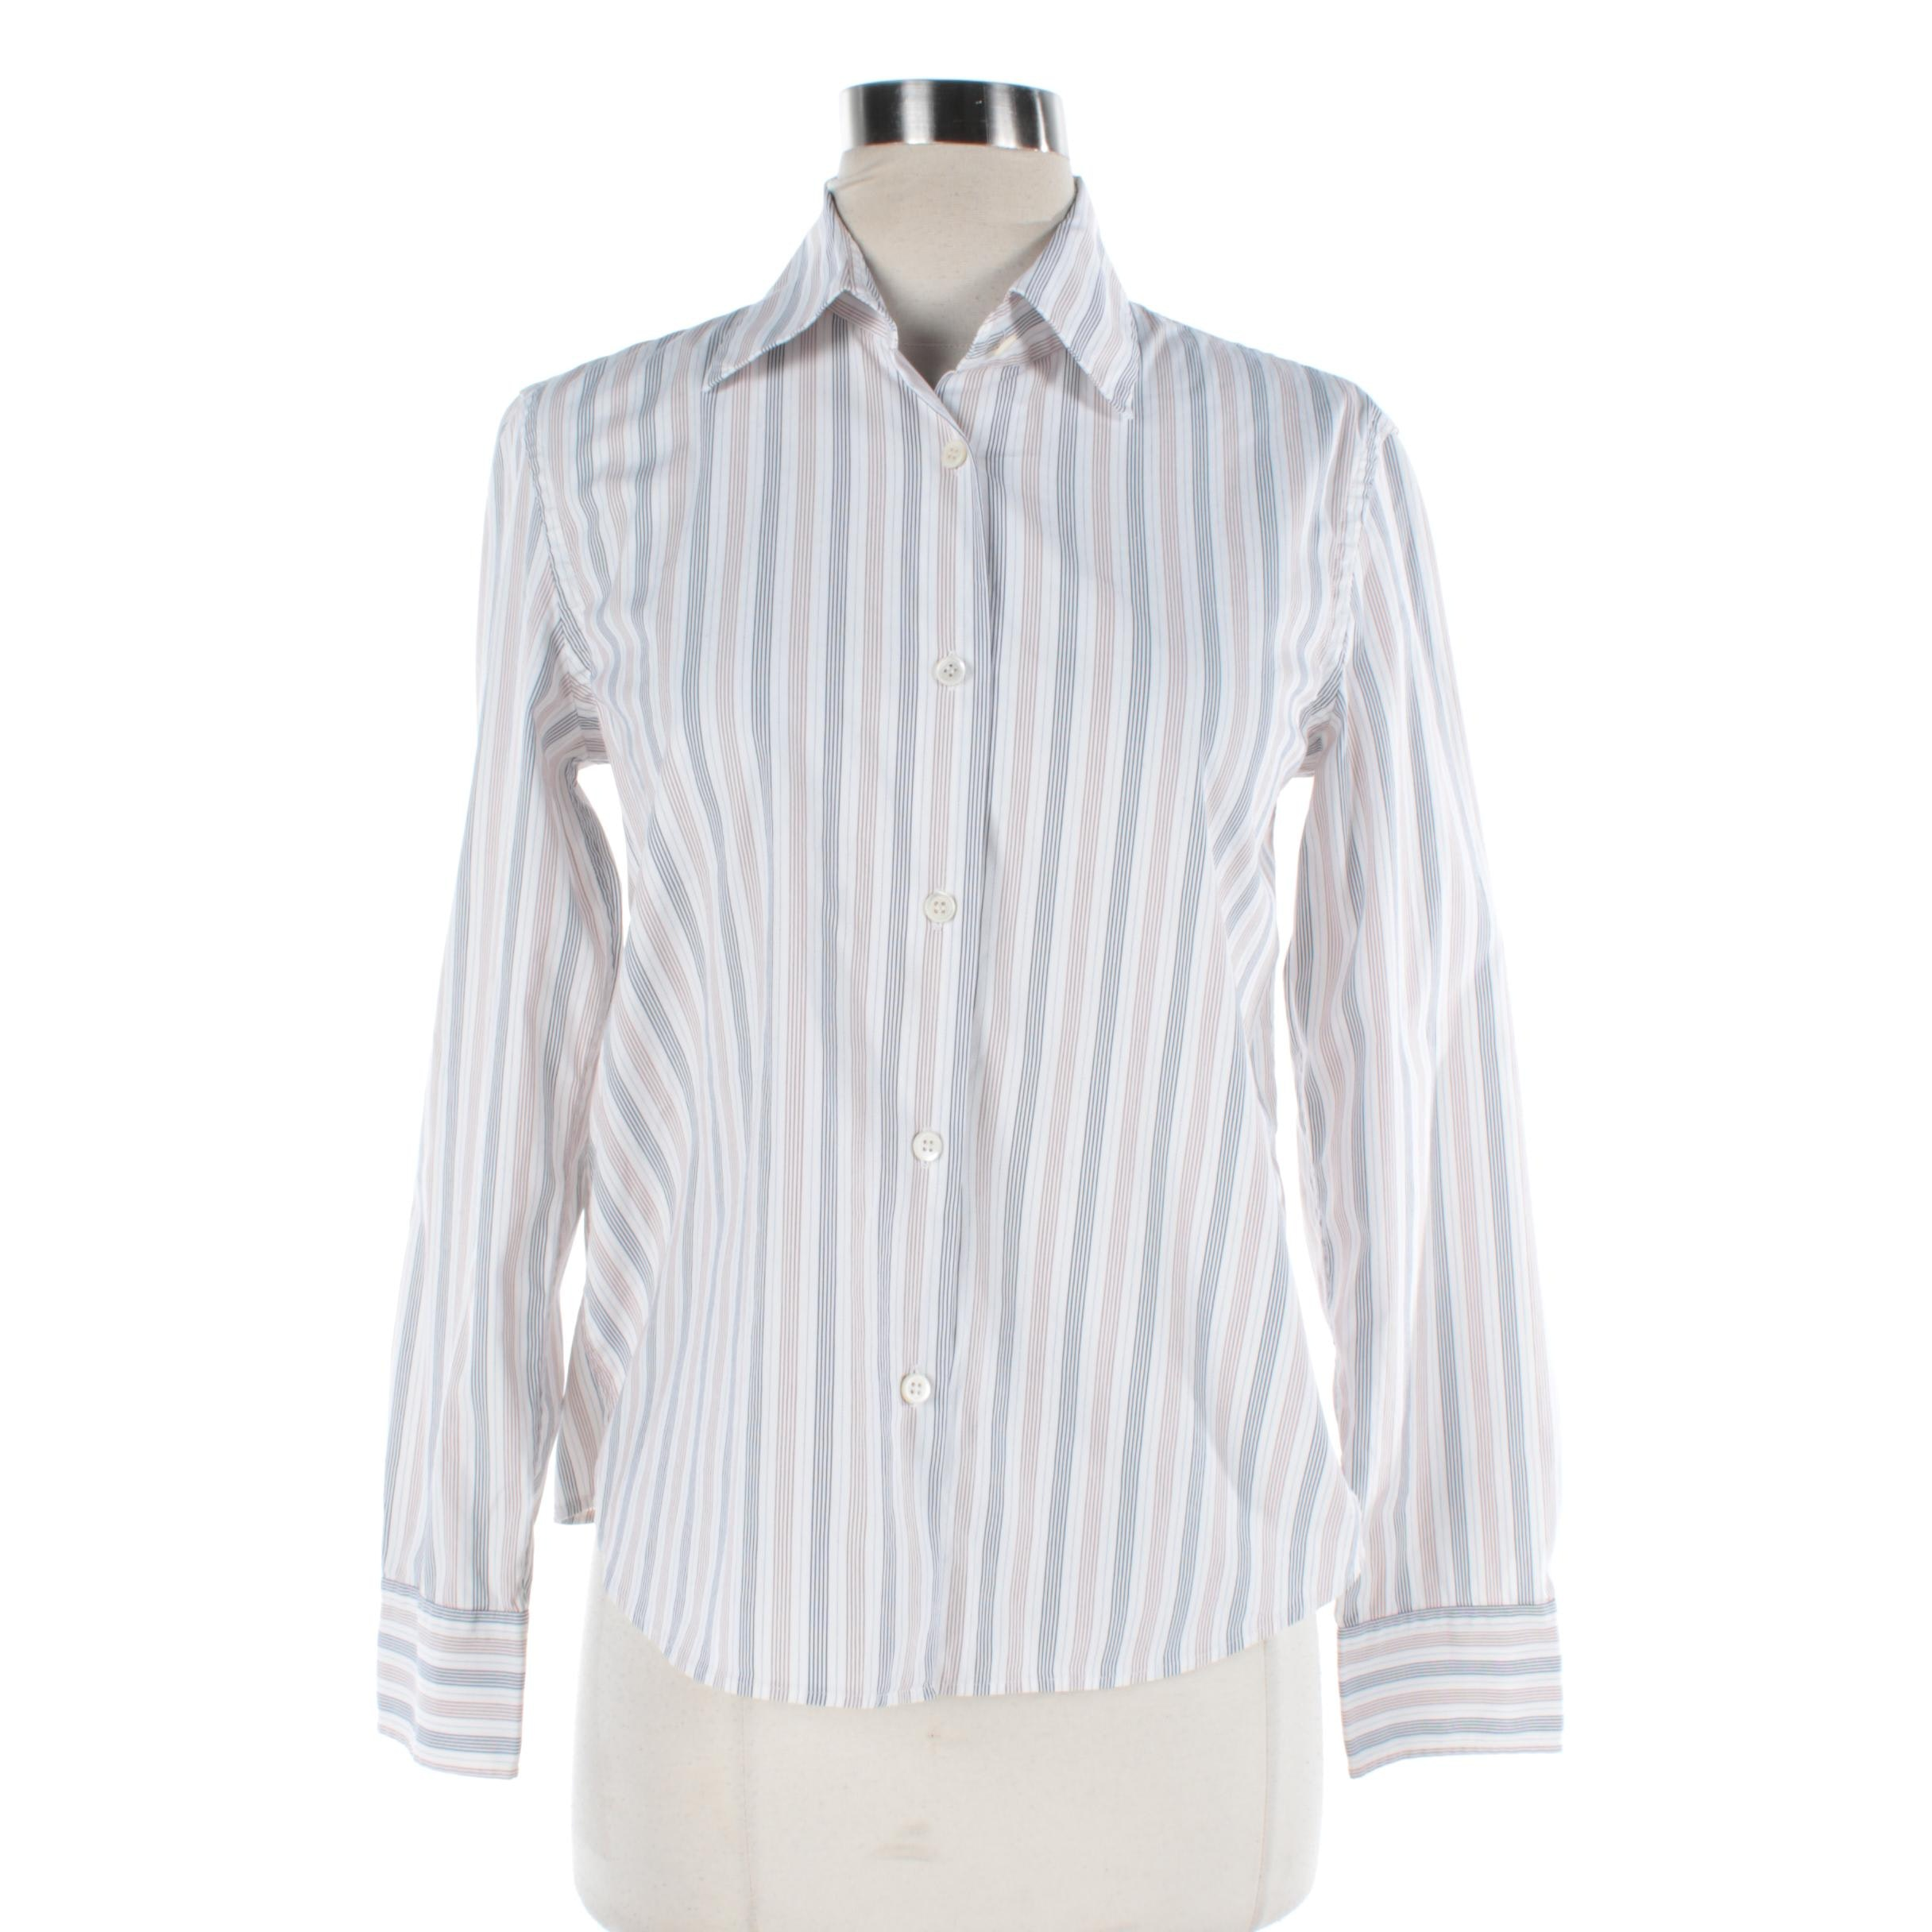 Women's Prada White, Beige and Navy Striped Button-Front Shirt